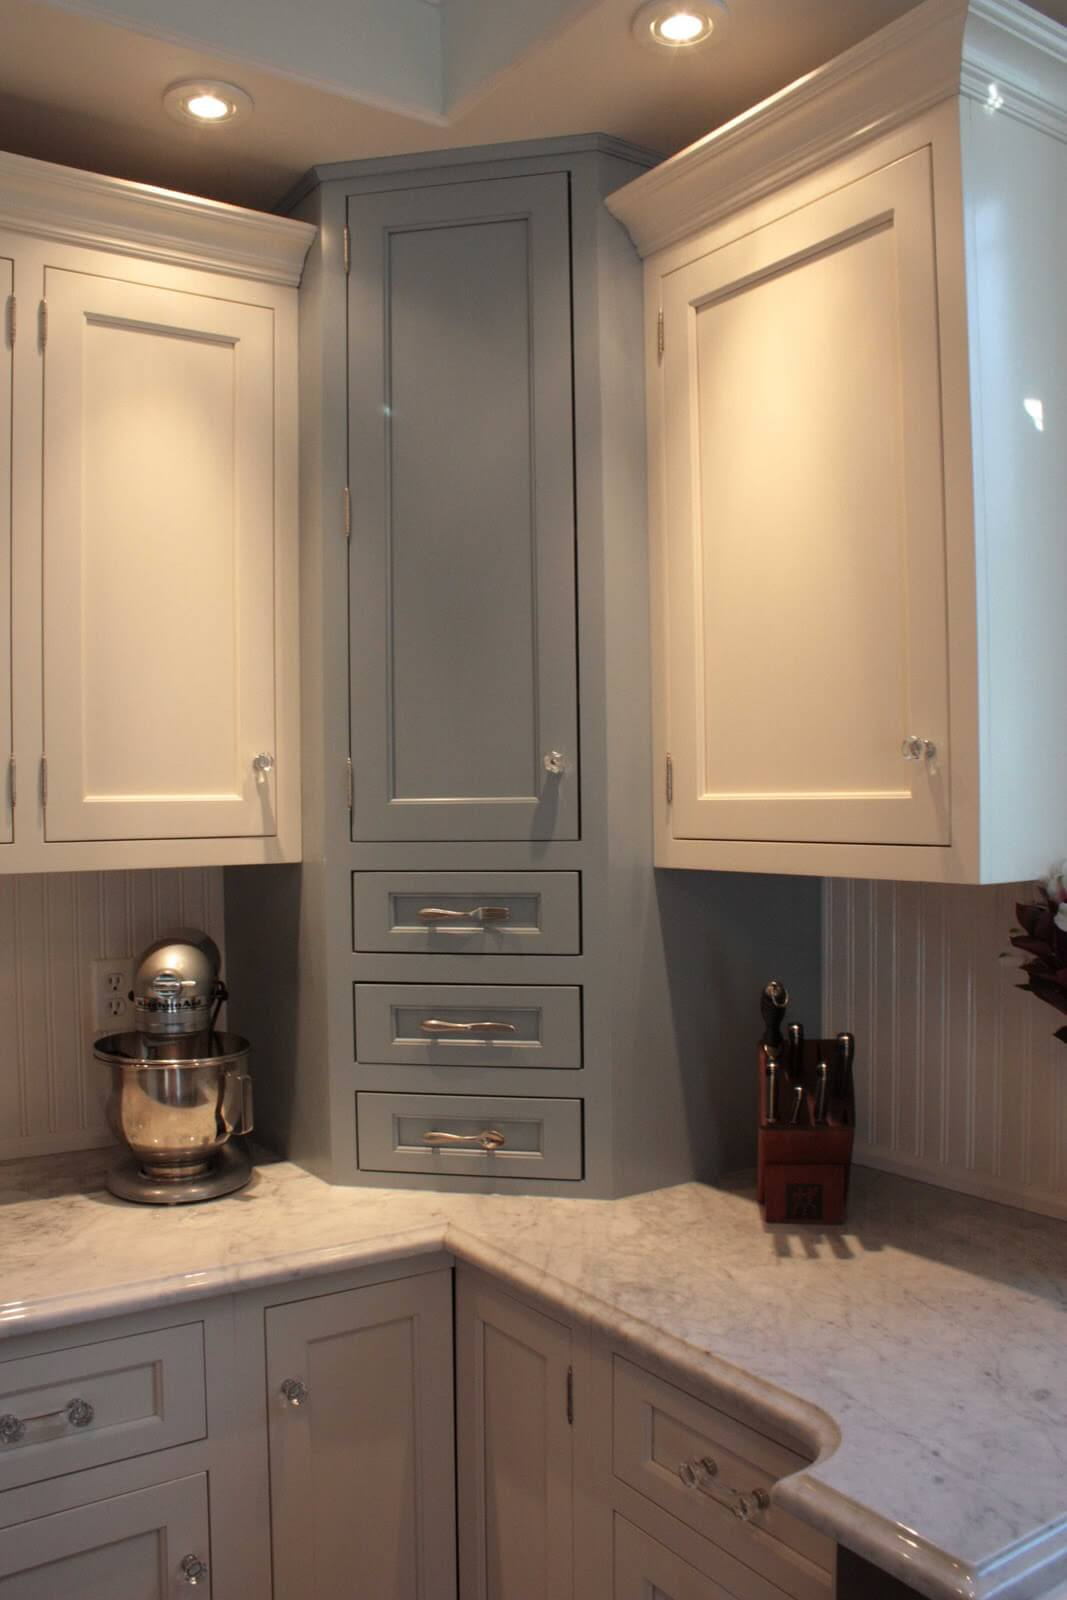 Kitchen Cabinets with Cute Drawer Pulls